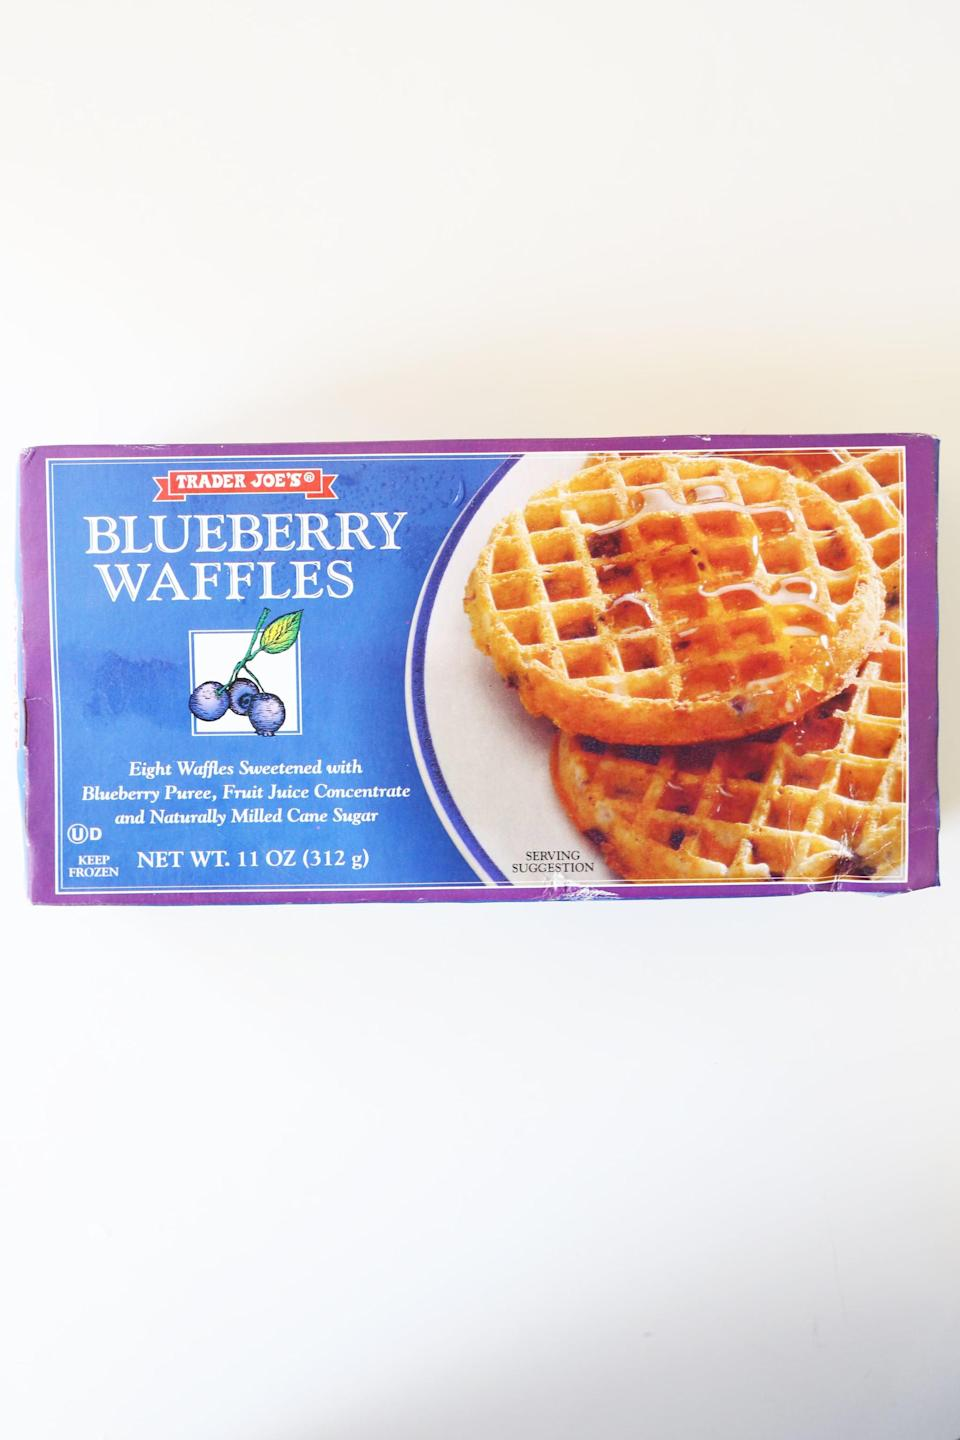 <p> There's nothing better than the smell of crisp waffles in the morning. Filling your kitchen with the scent of blueberry goodness, your mouth will drool before you even have a taste. Needless to say, Trader Joe's frozen blueberry waffles are a must have. </p>